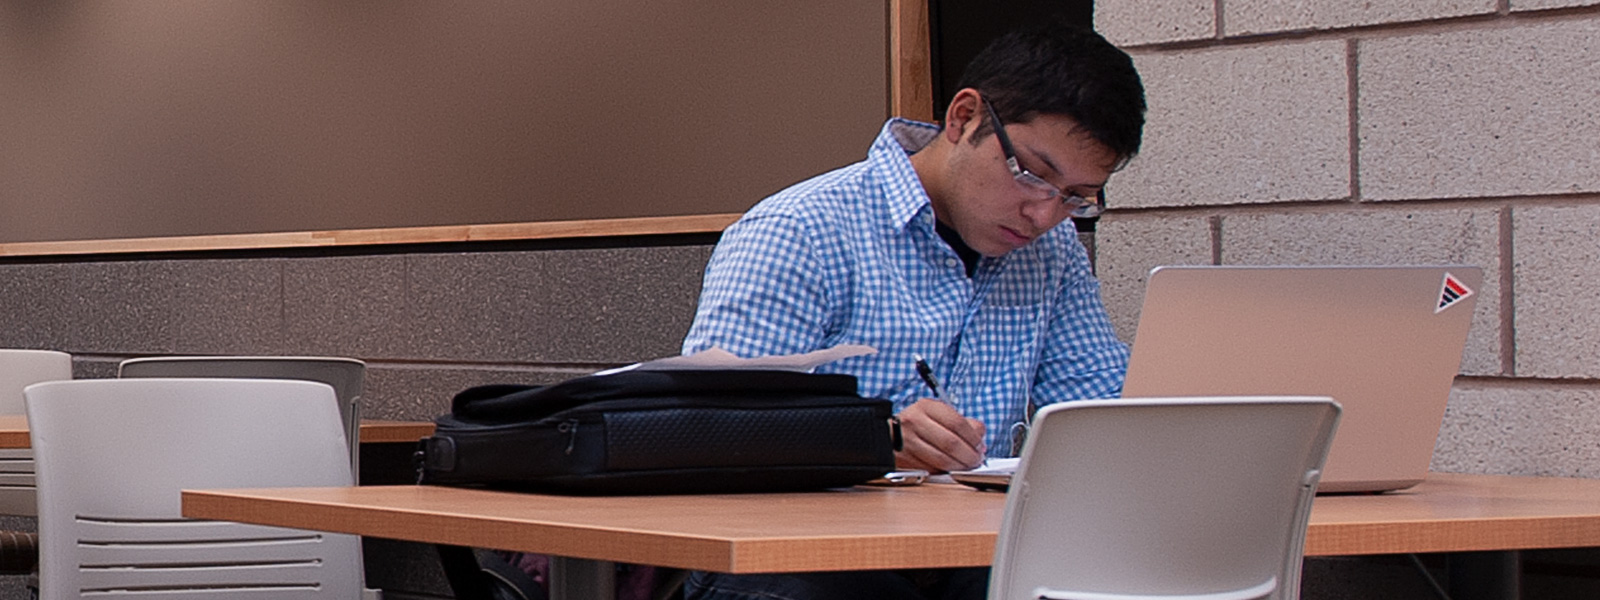 Student at desk working on computer doing work.